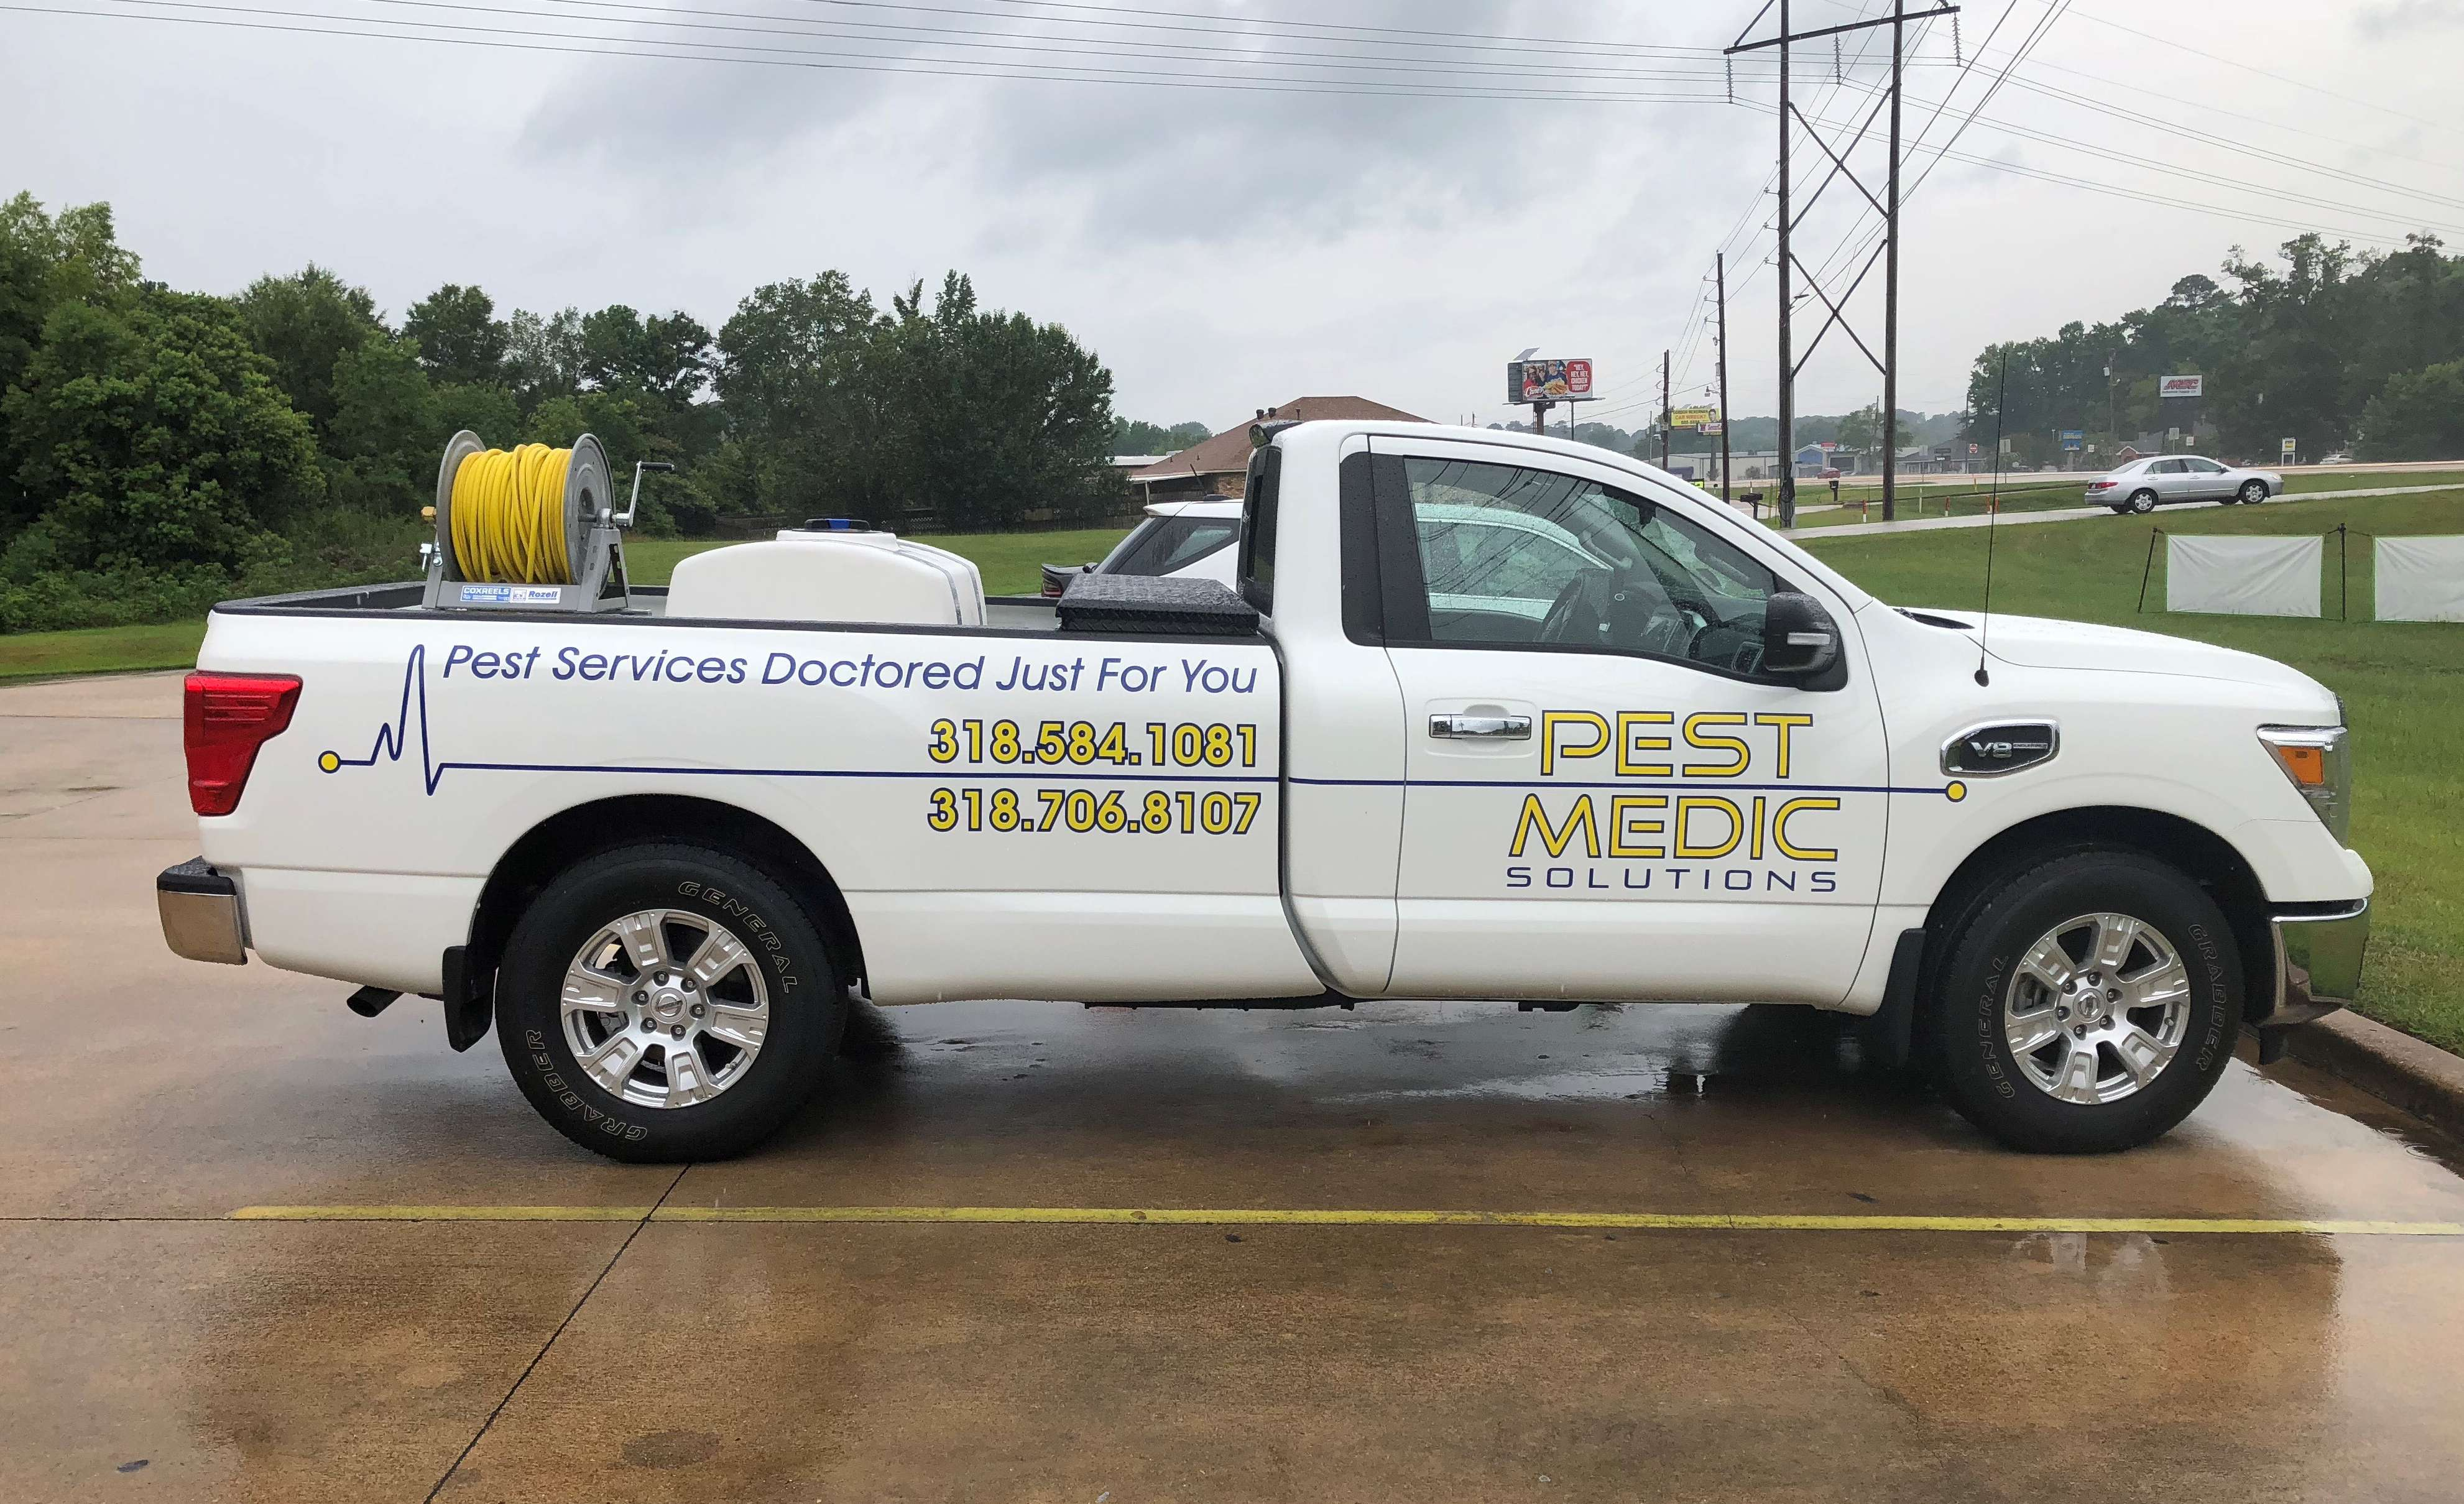 Pest control services in Shreveport, LA